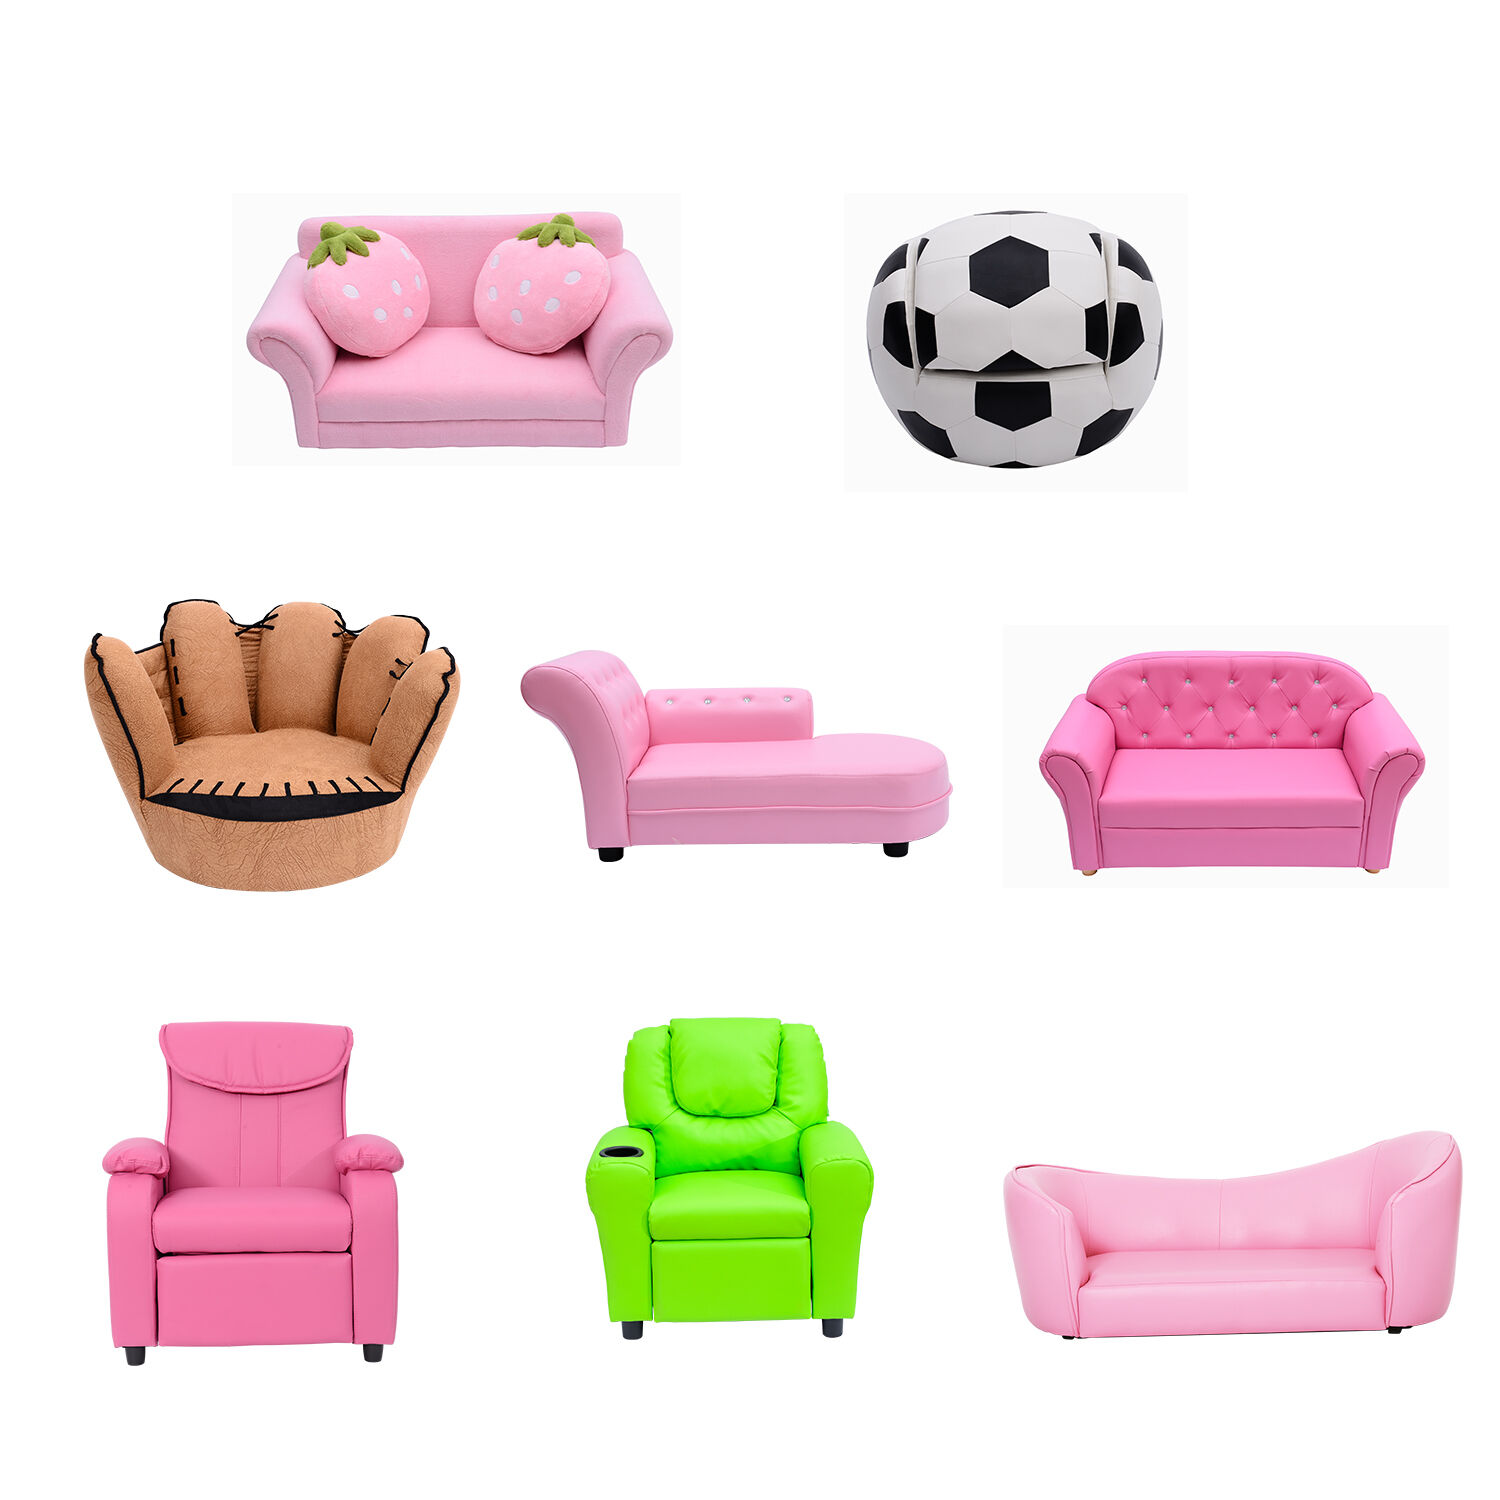 kindersofa sofa couch kinder stuhl kinderzimmer softsofa. Black Bedroom Furniture Sets. Home Design Ideas